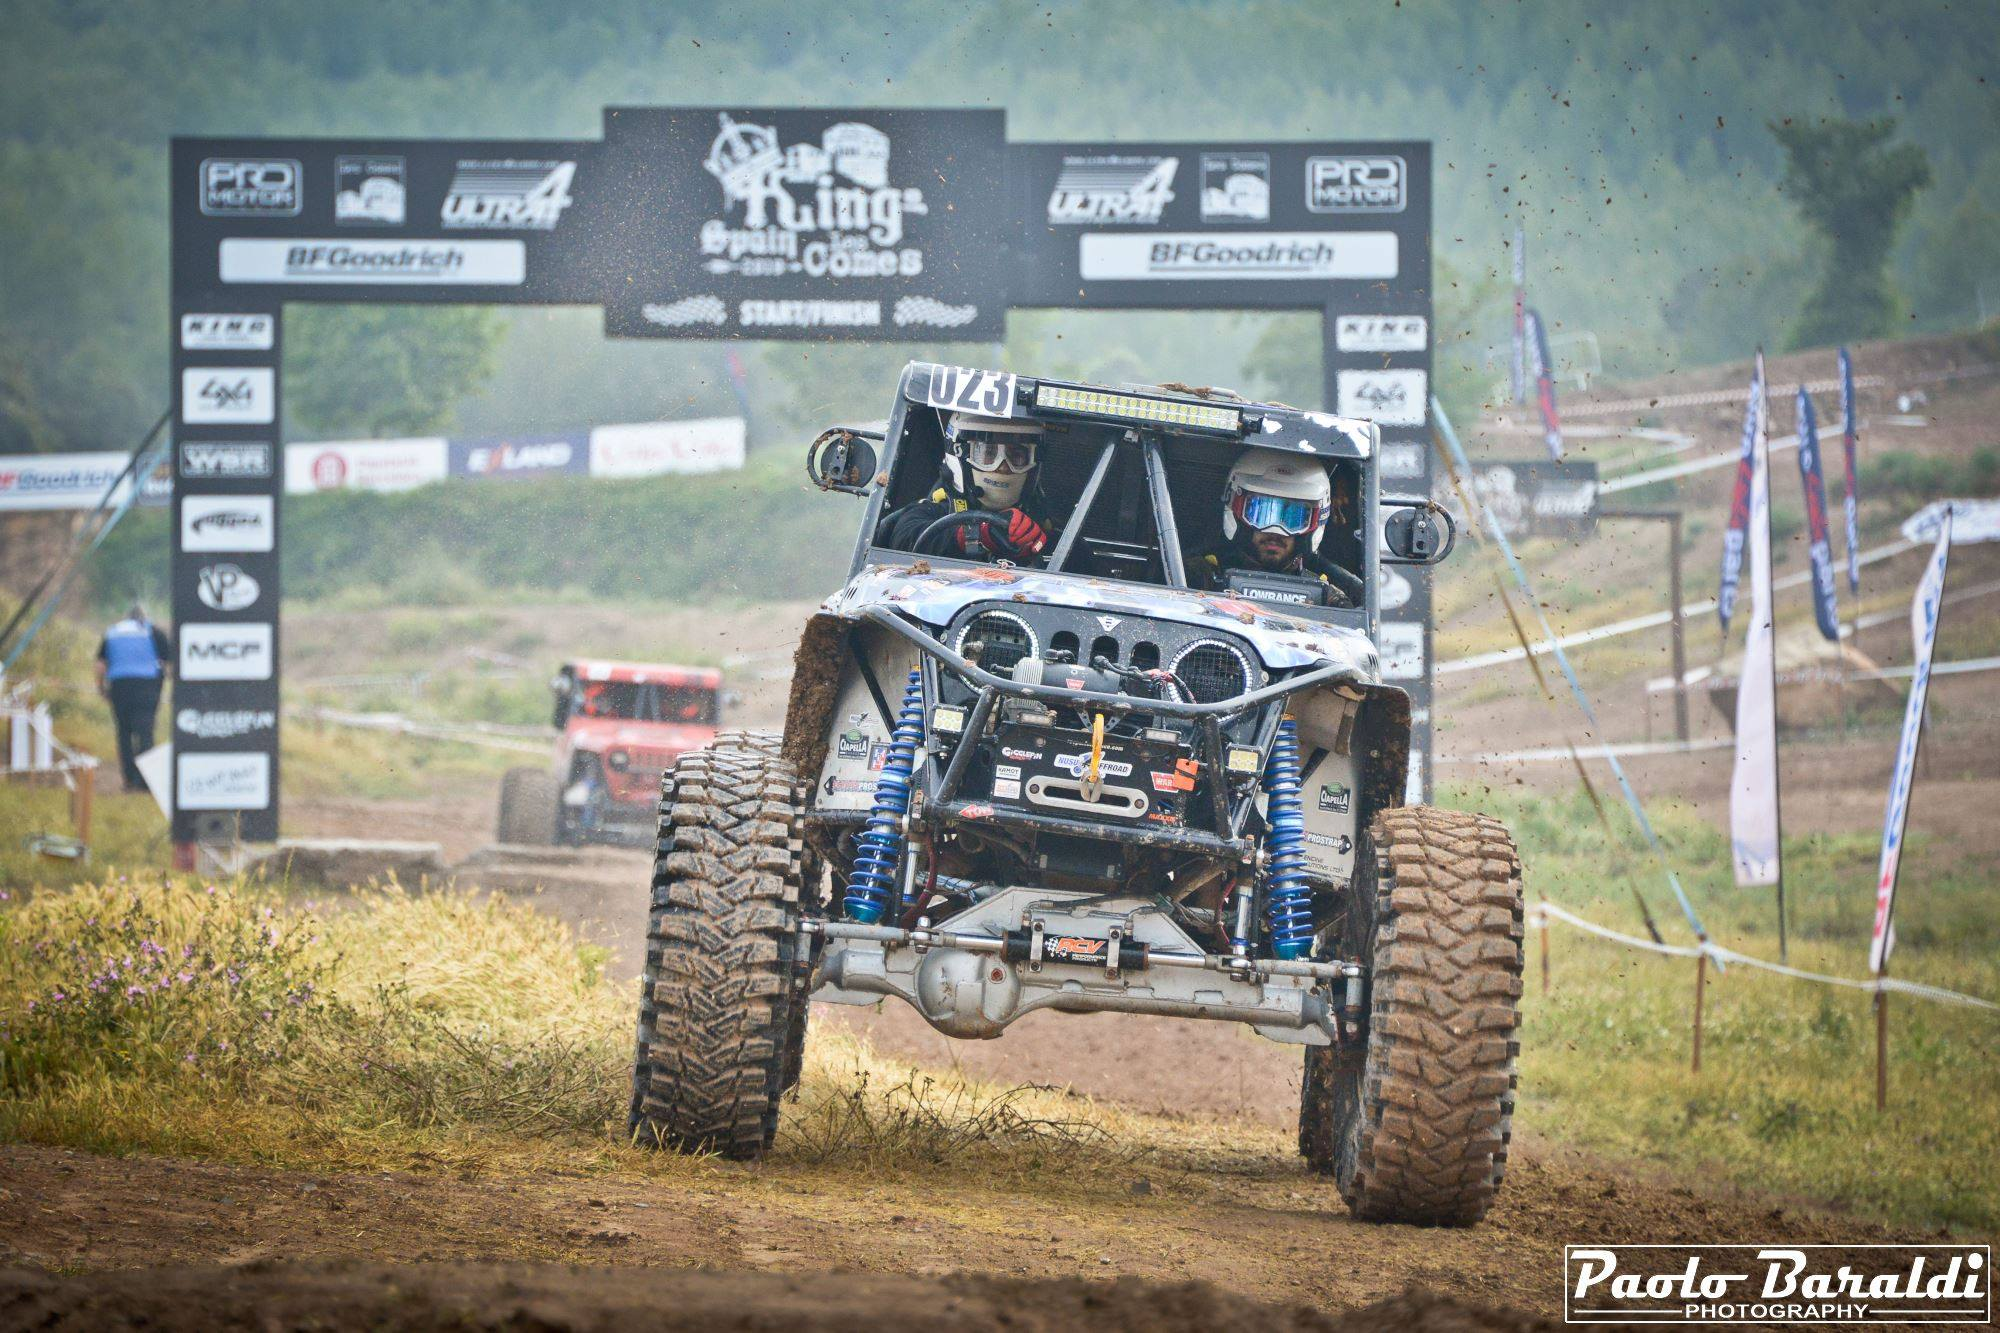 Neville Ciantar finishing 5th at Les Comes in Spain